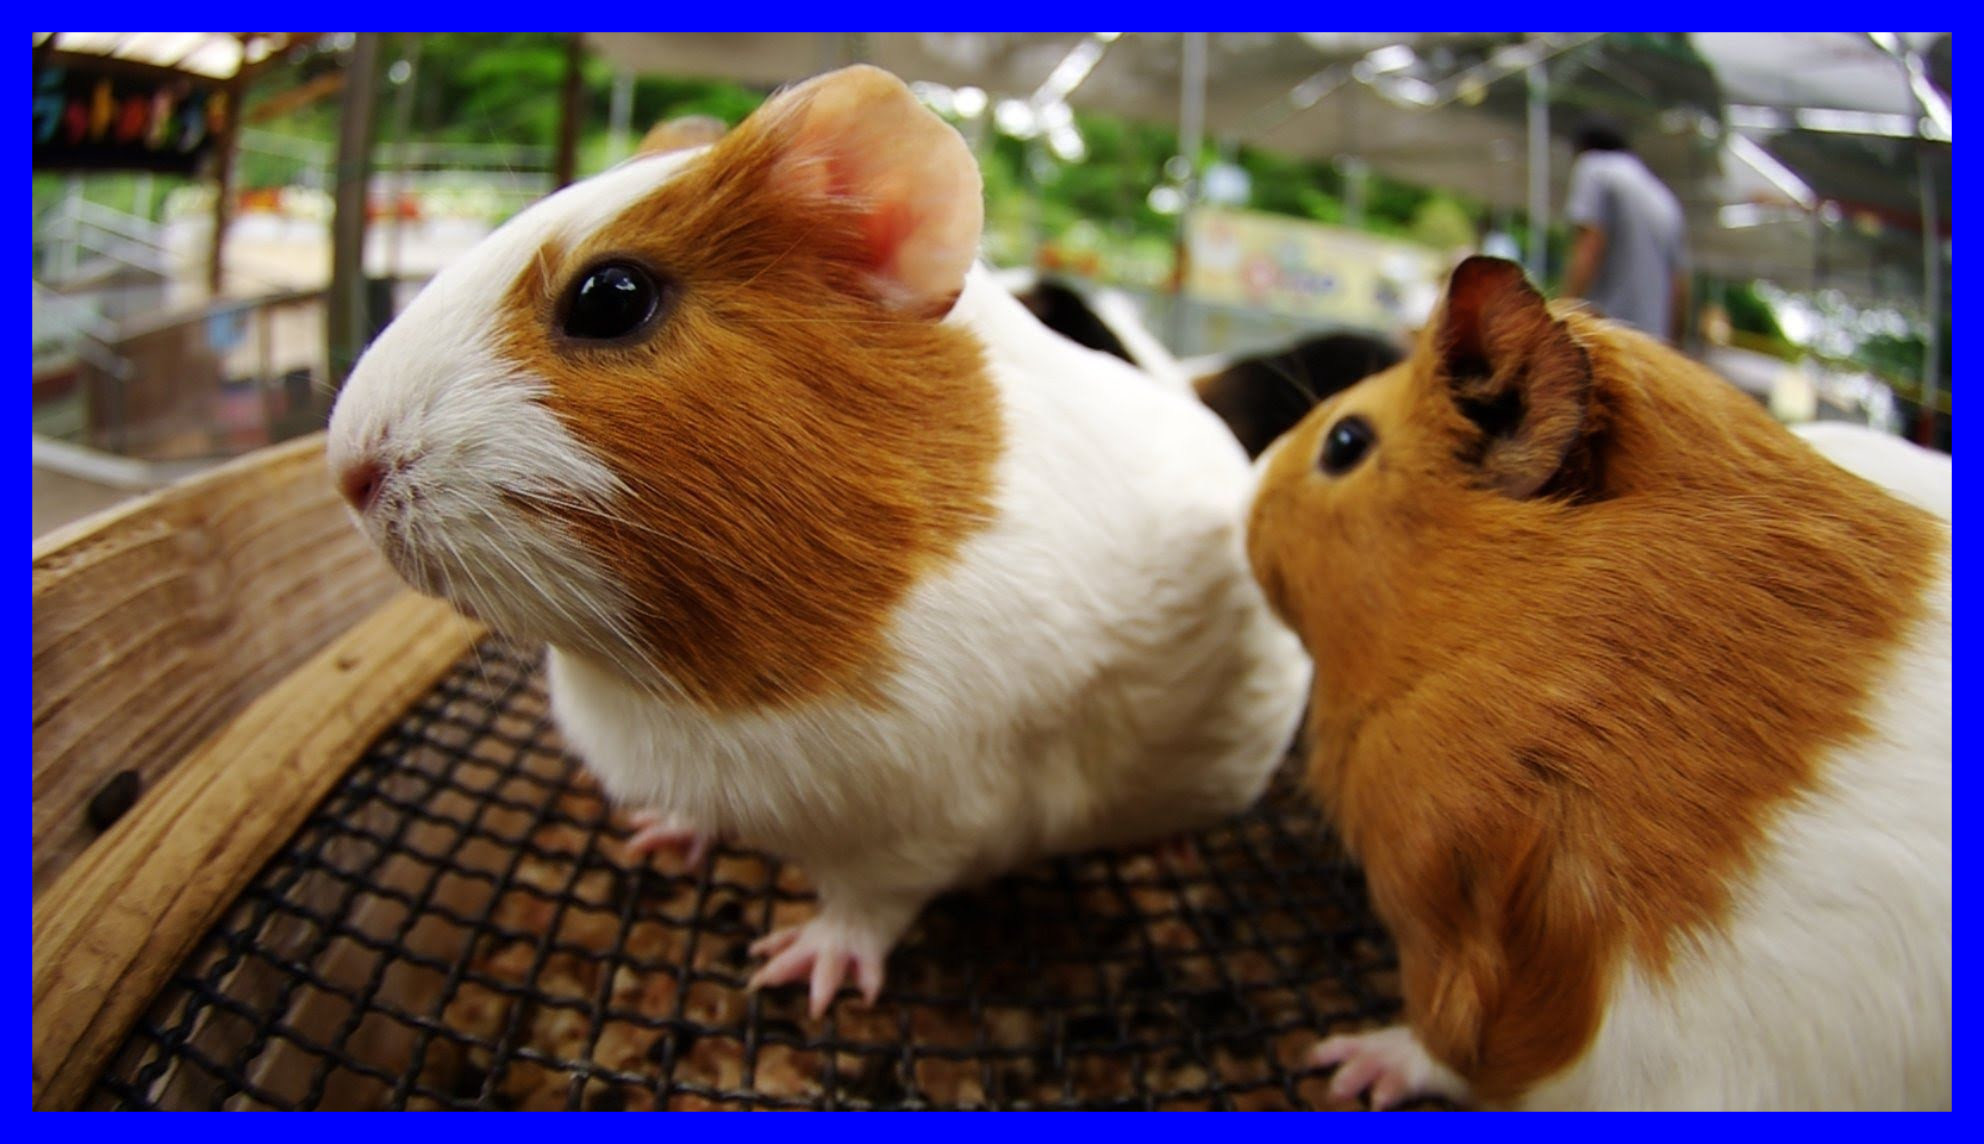 Res: 1984x1144, Funny Pig Funny Guinea Pig Names For Females Amazing Christmas Guinea Pig  Wallpaper For Funny Names Females Styles And Inspiration